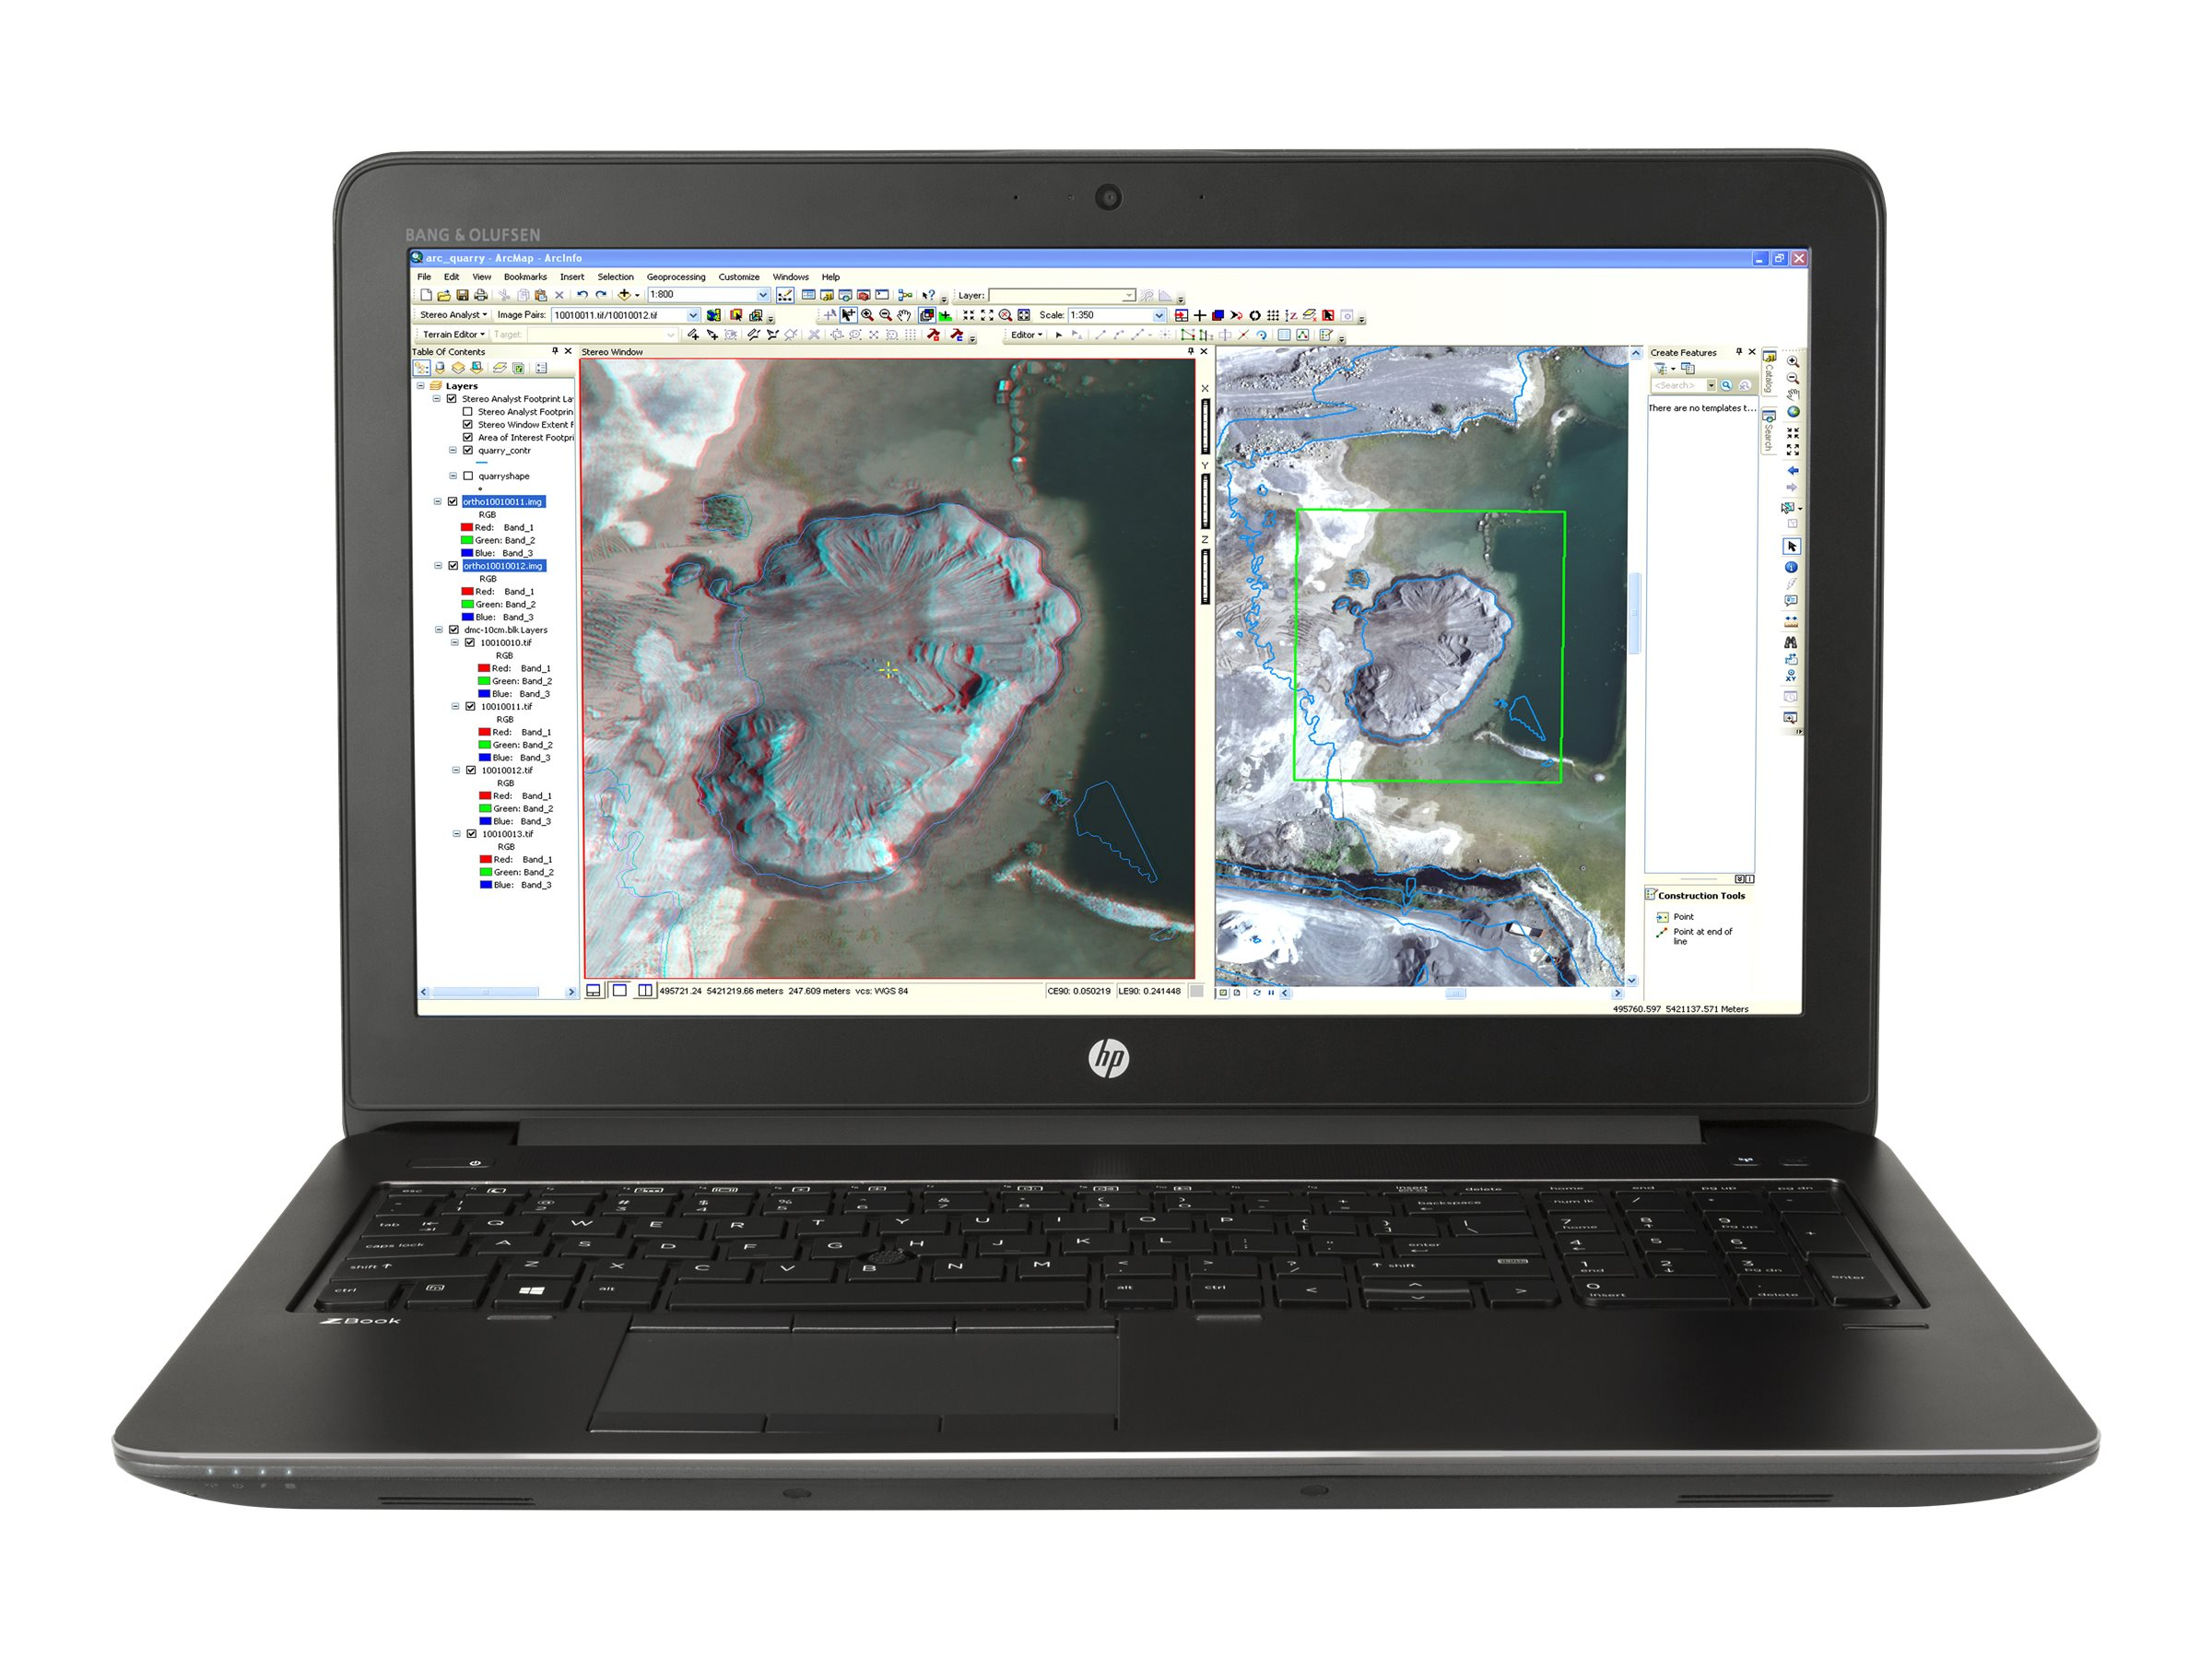 HP ZBook 15 G3 Core i7-6700HQ 2.6GHz 16GB 512GB ac BT FR WC 9C M1000M 15.6 FHD W7P64-W10P, V2W10UT#ABA